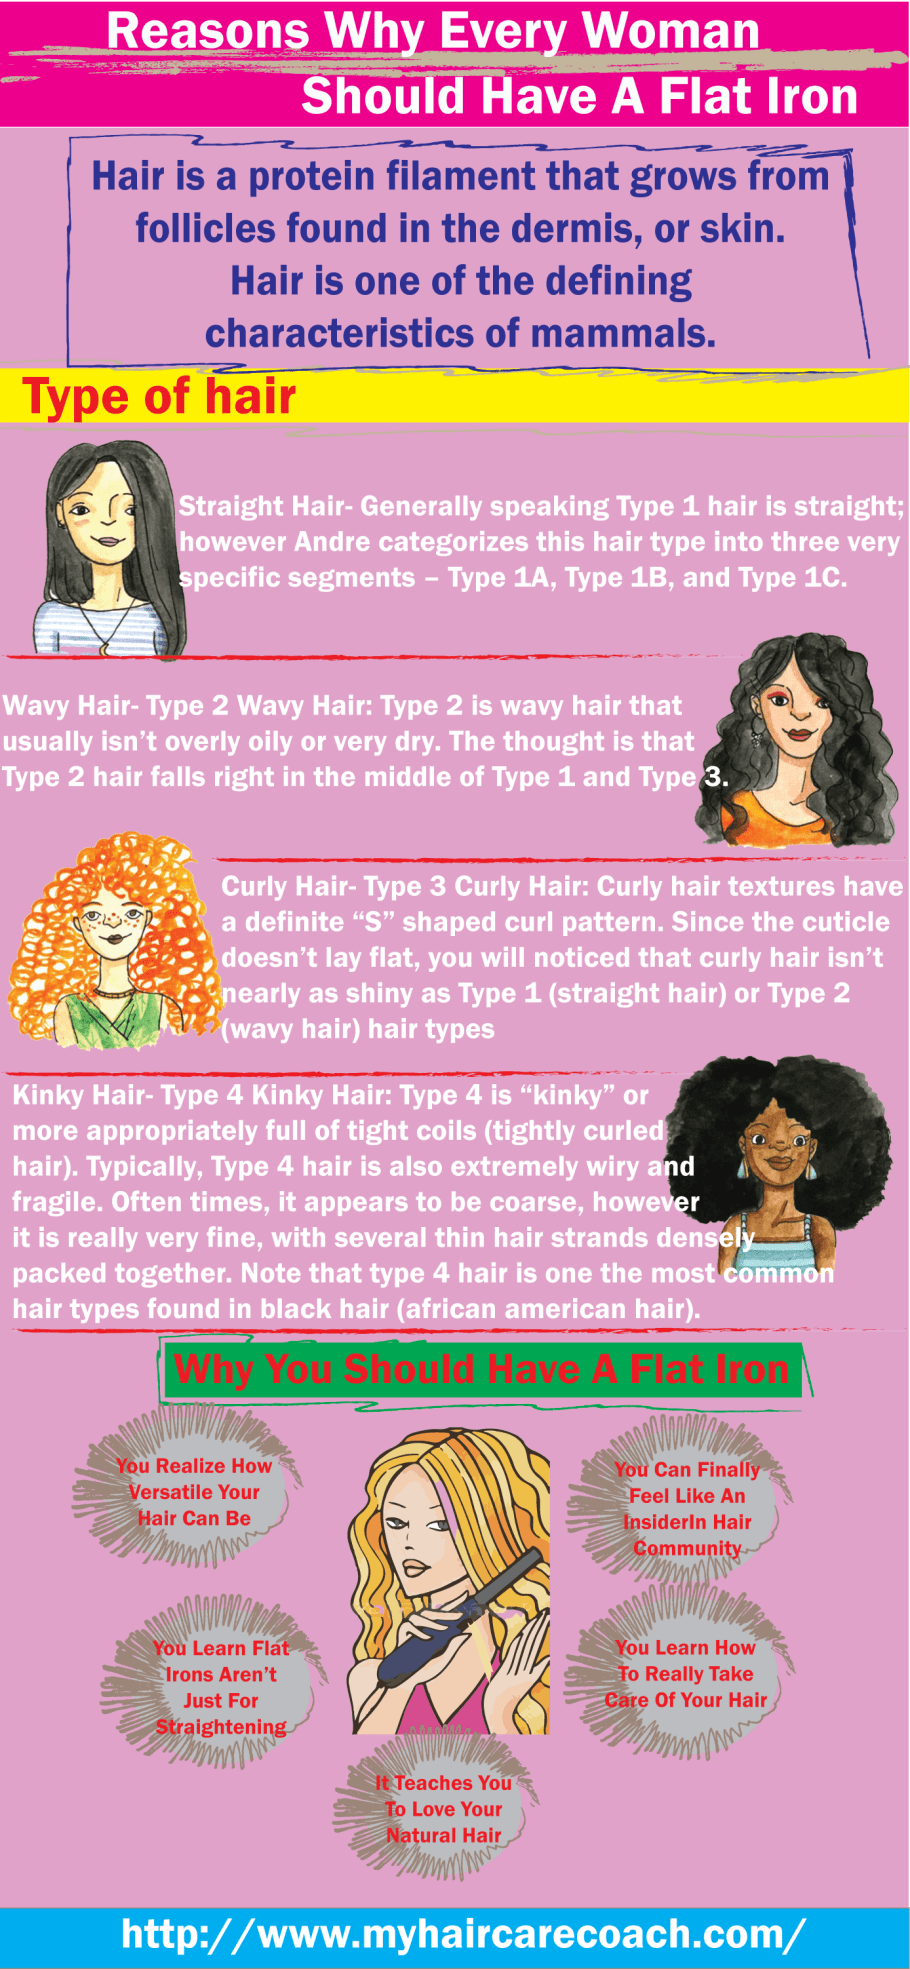 infographic-best-flat-iron-for-natural-hair